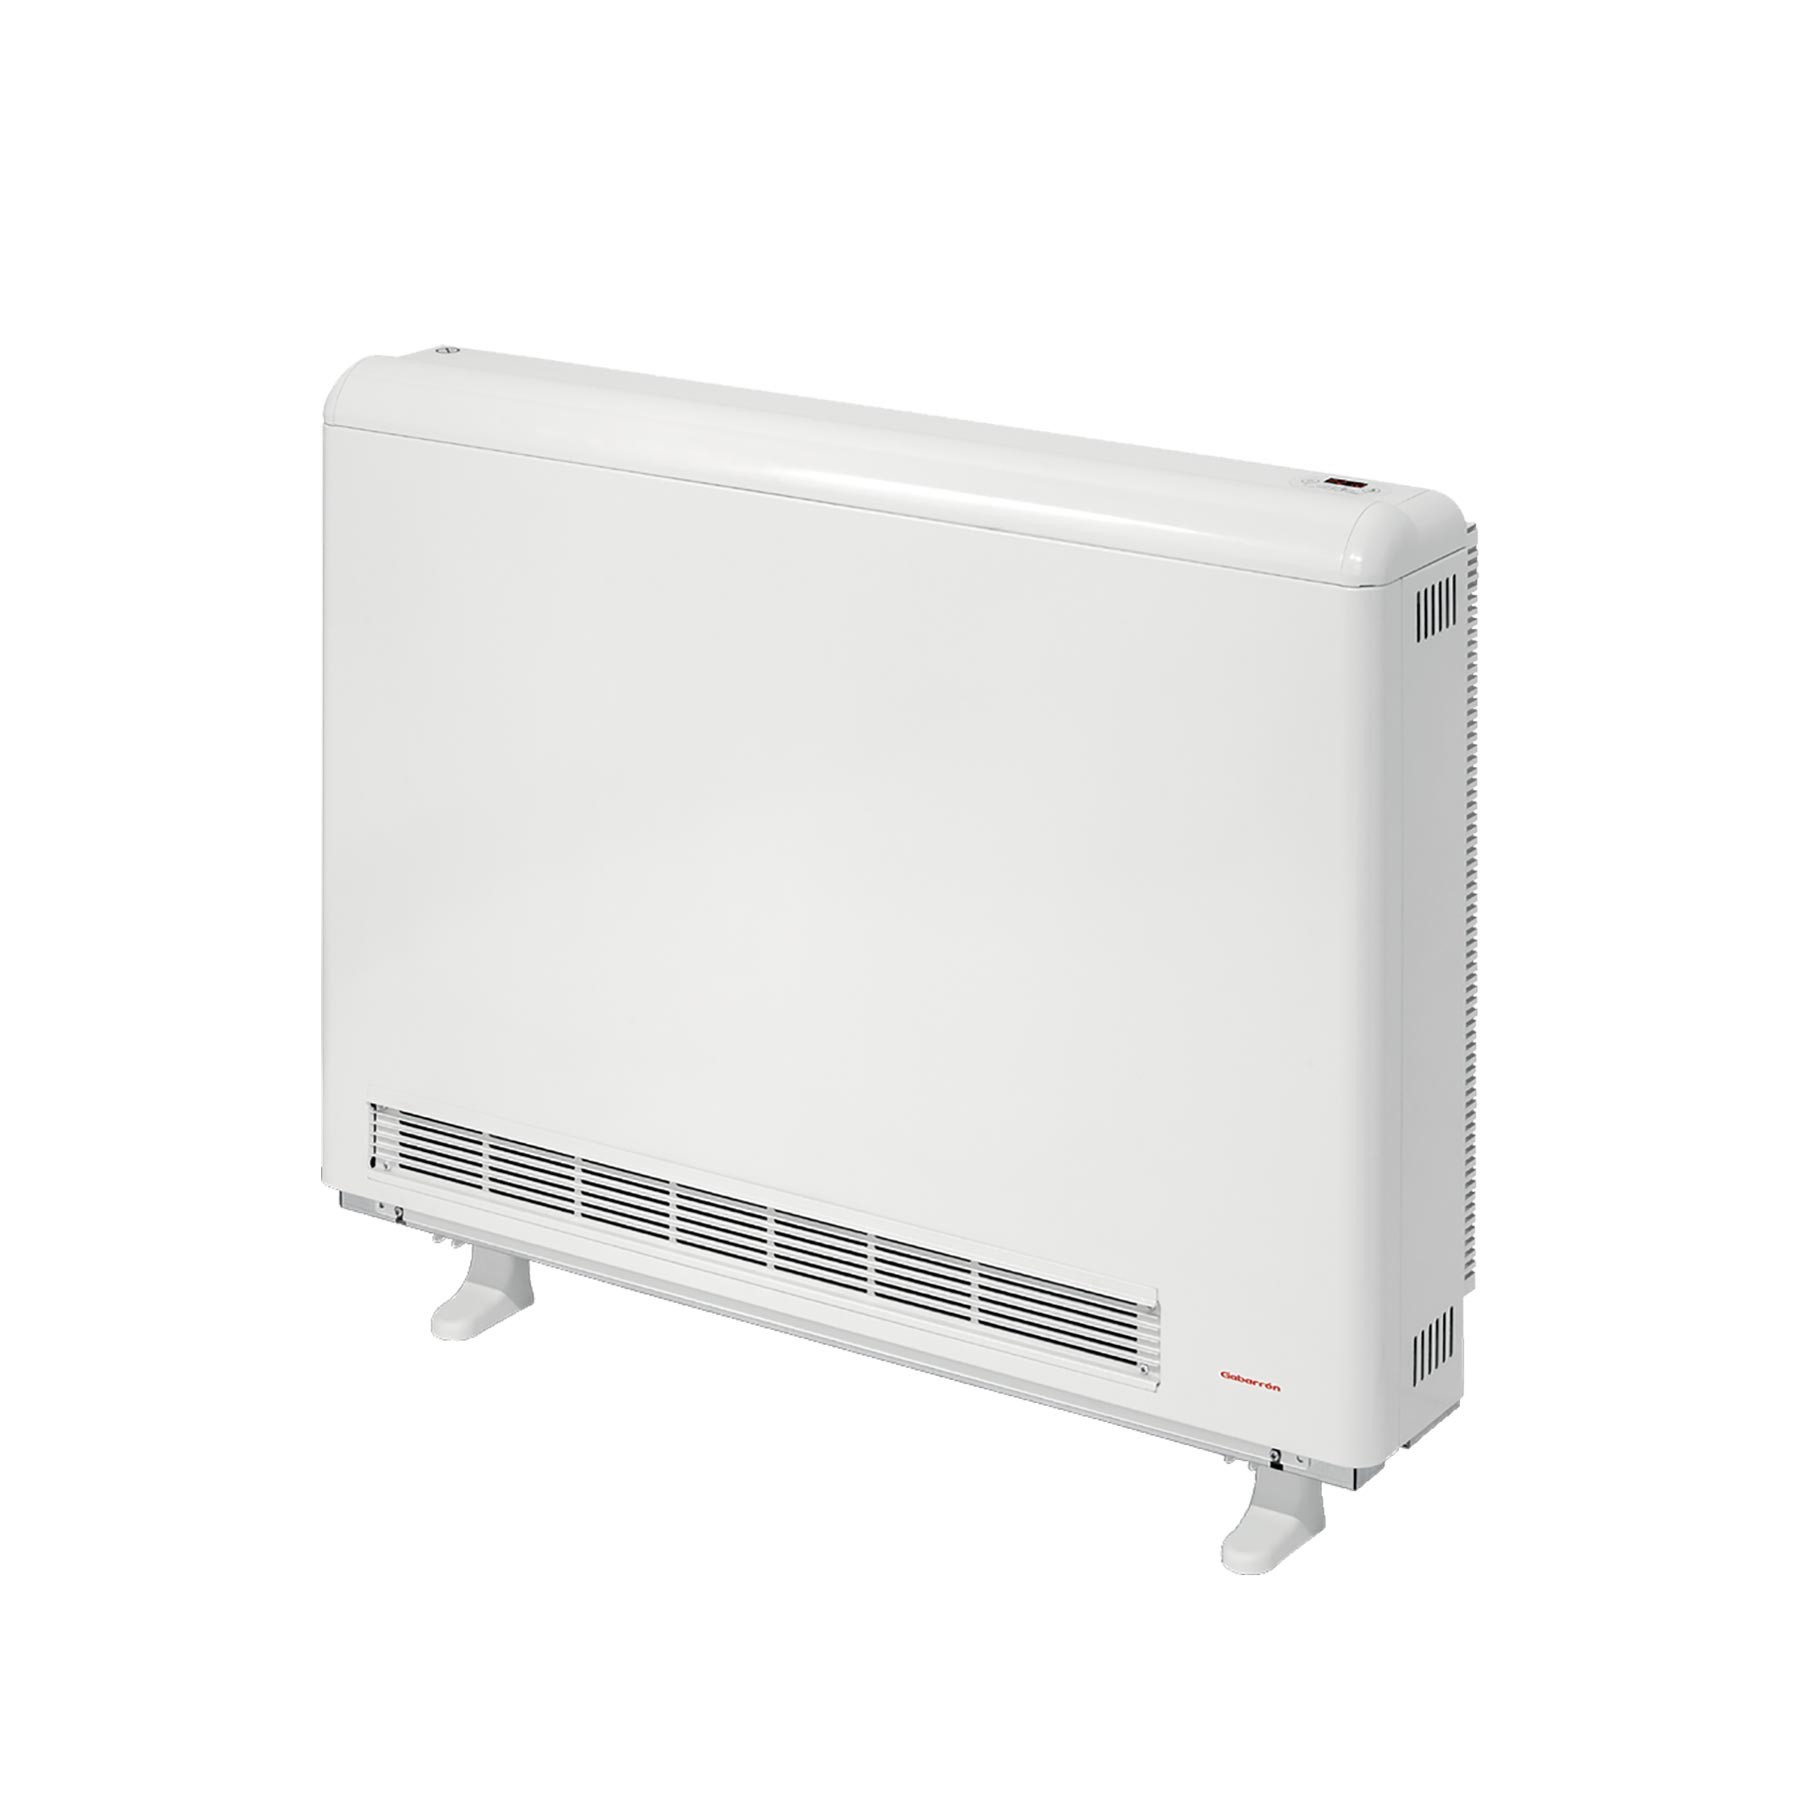 Ecombi HHR20 Fan Assisted Storage Heater - 1.7kW